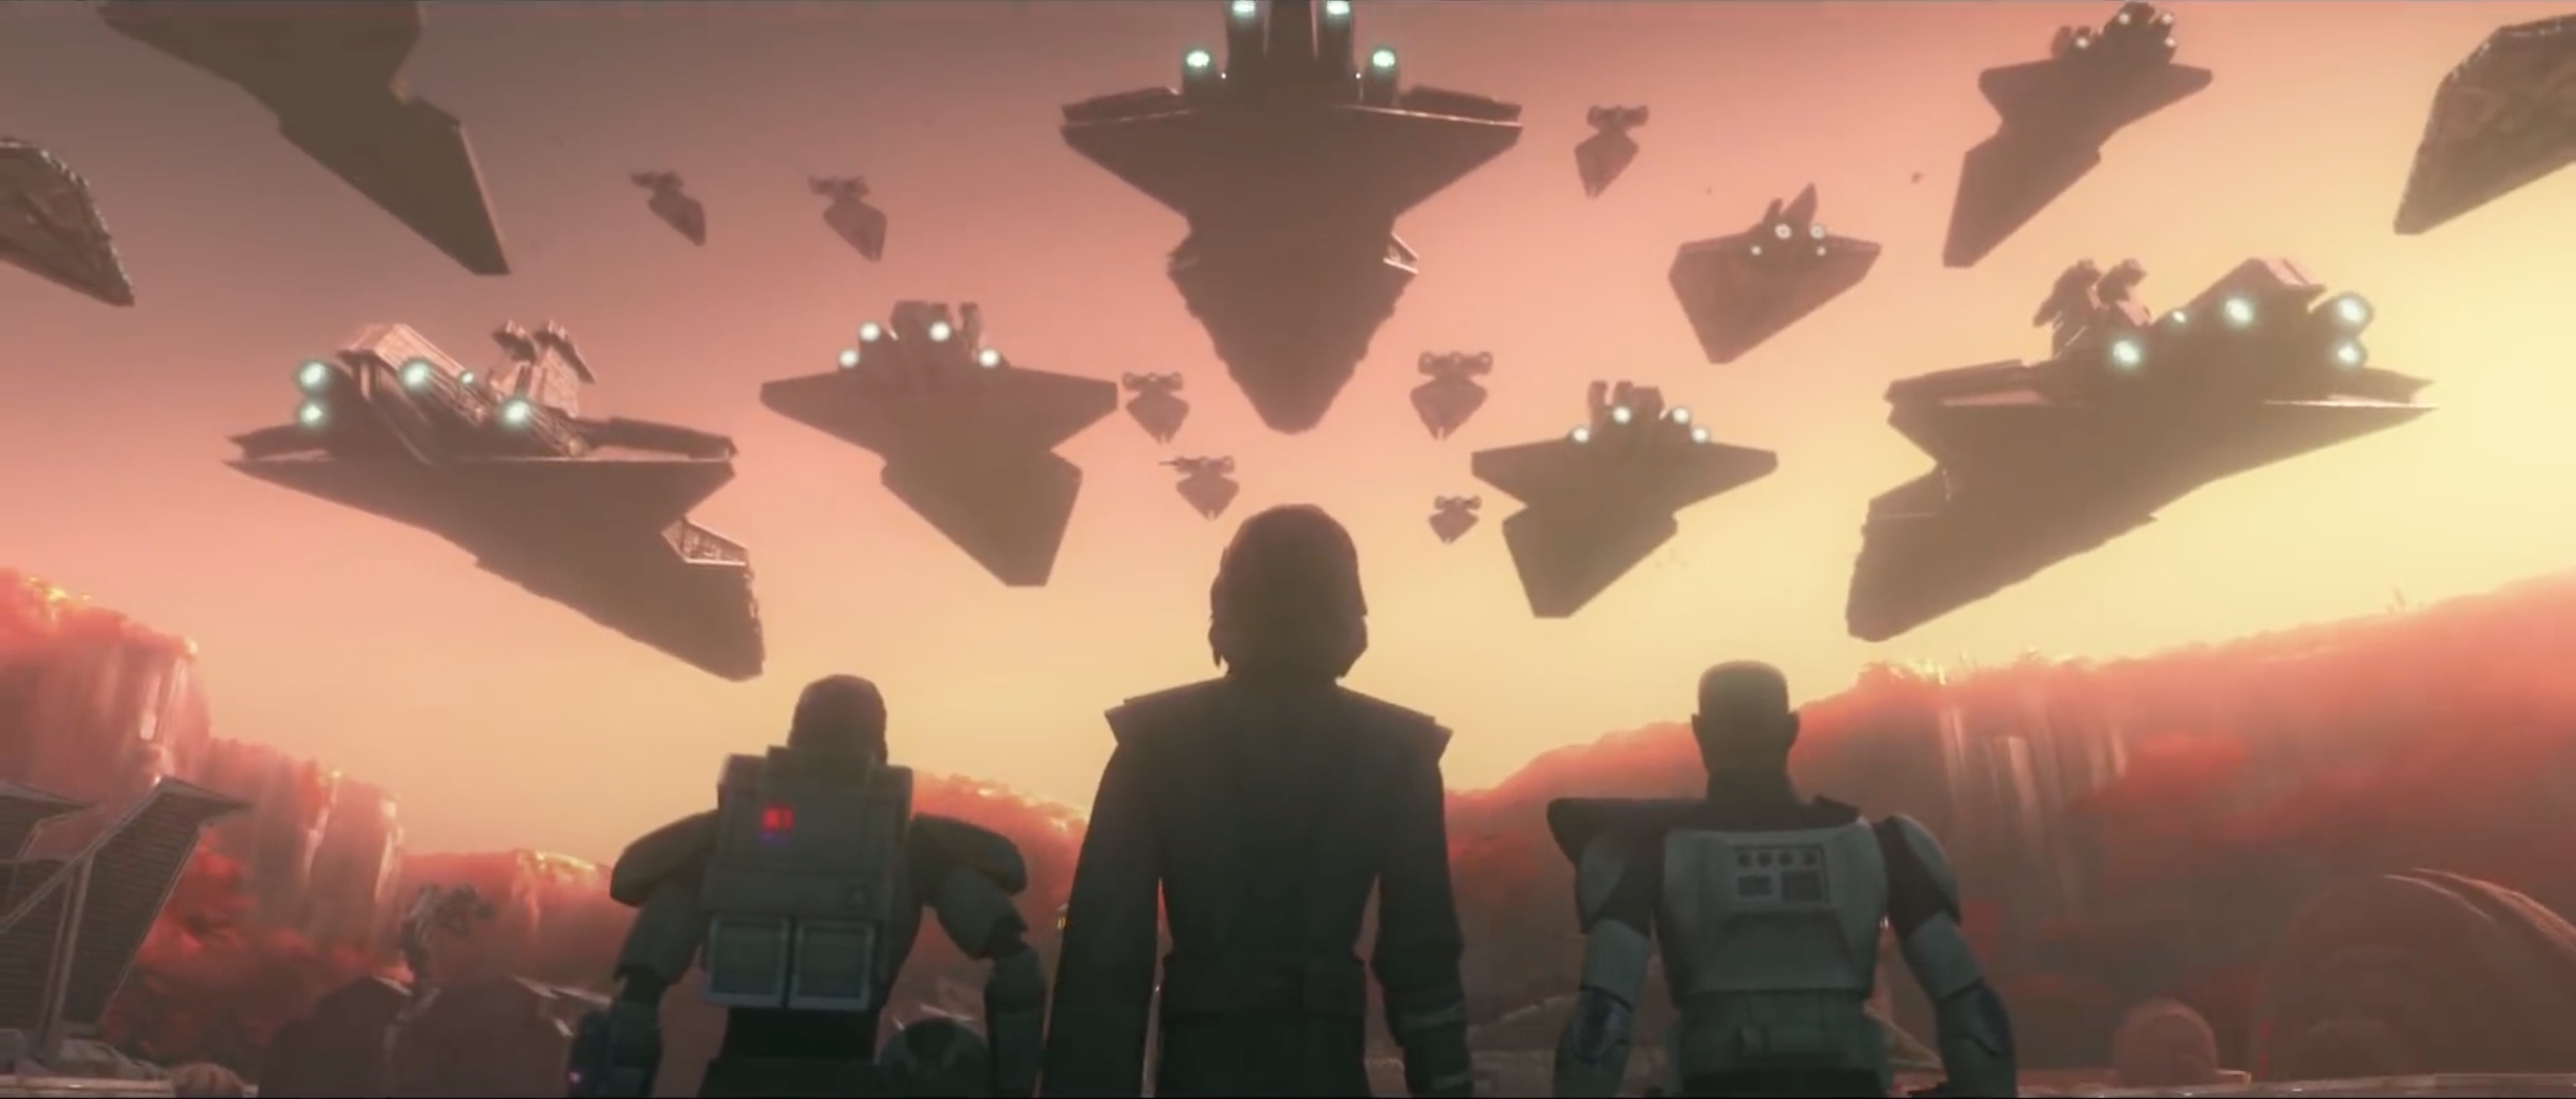 Star Wars: The Clone Wars is Returning to Finish its Unfinished Story!